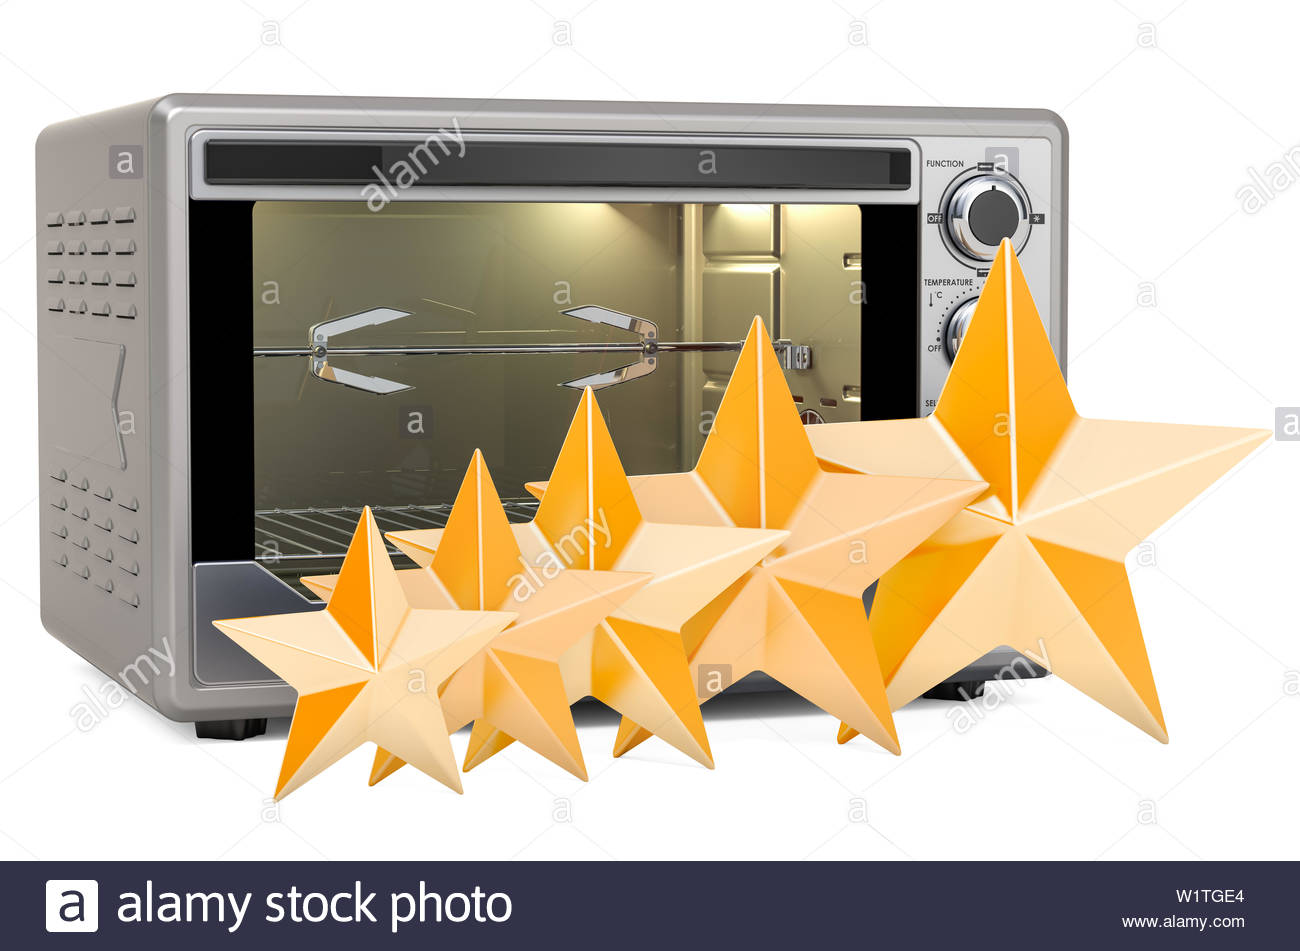 Customer rating of Convection Toaster Oven with Rotisserie and 1300x951